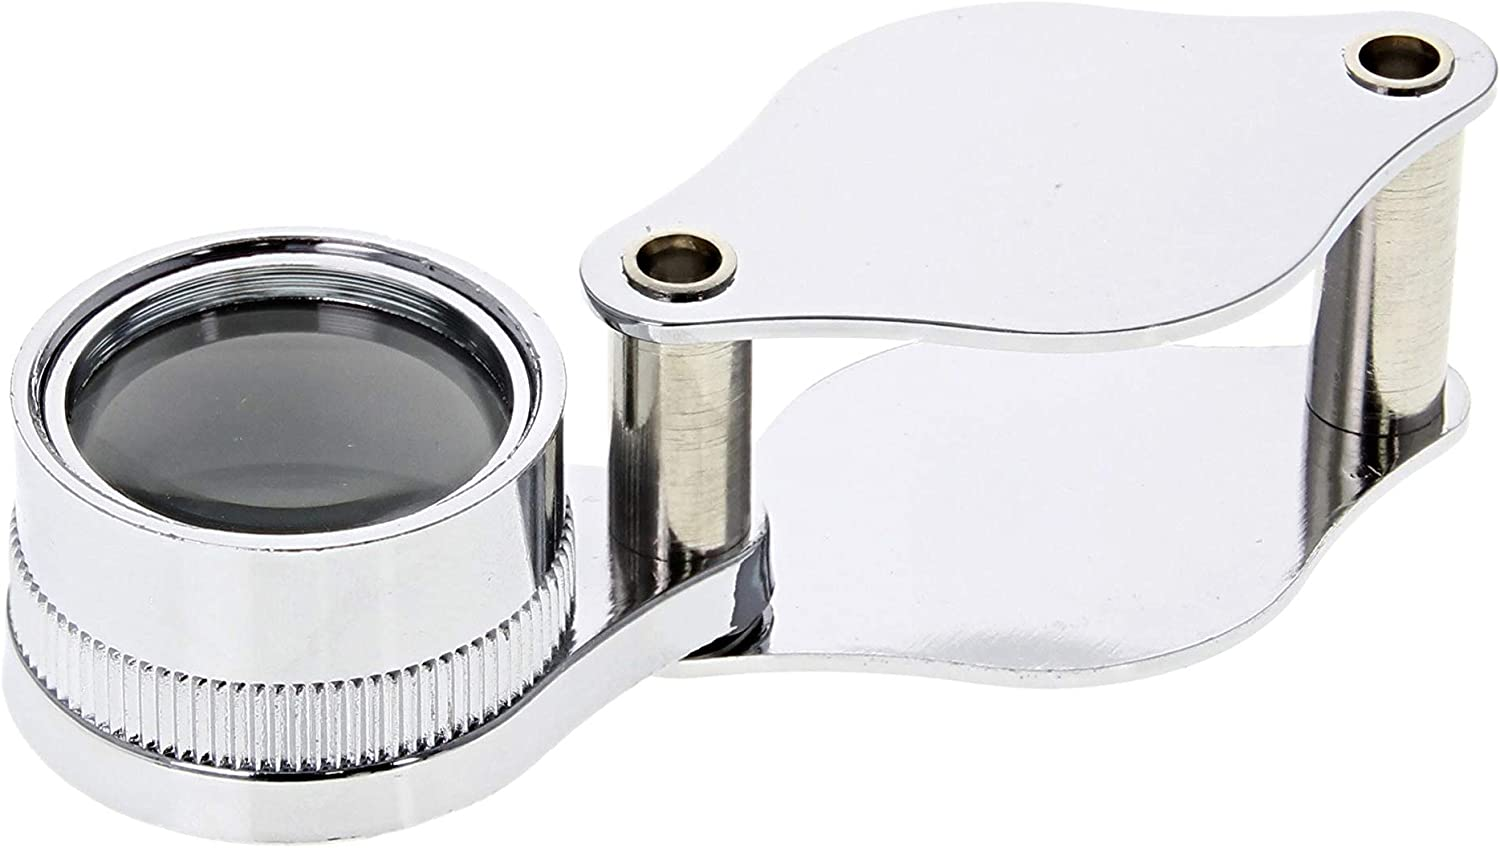 Jewelers LOUPE 10X Power Diamond Doublet LOUPE Silver Magnifier Tool S//Steel